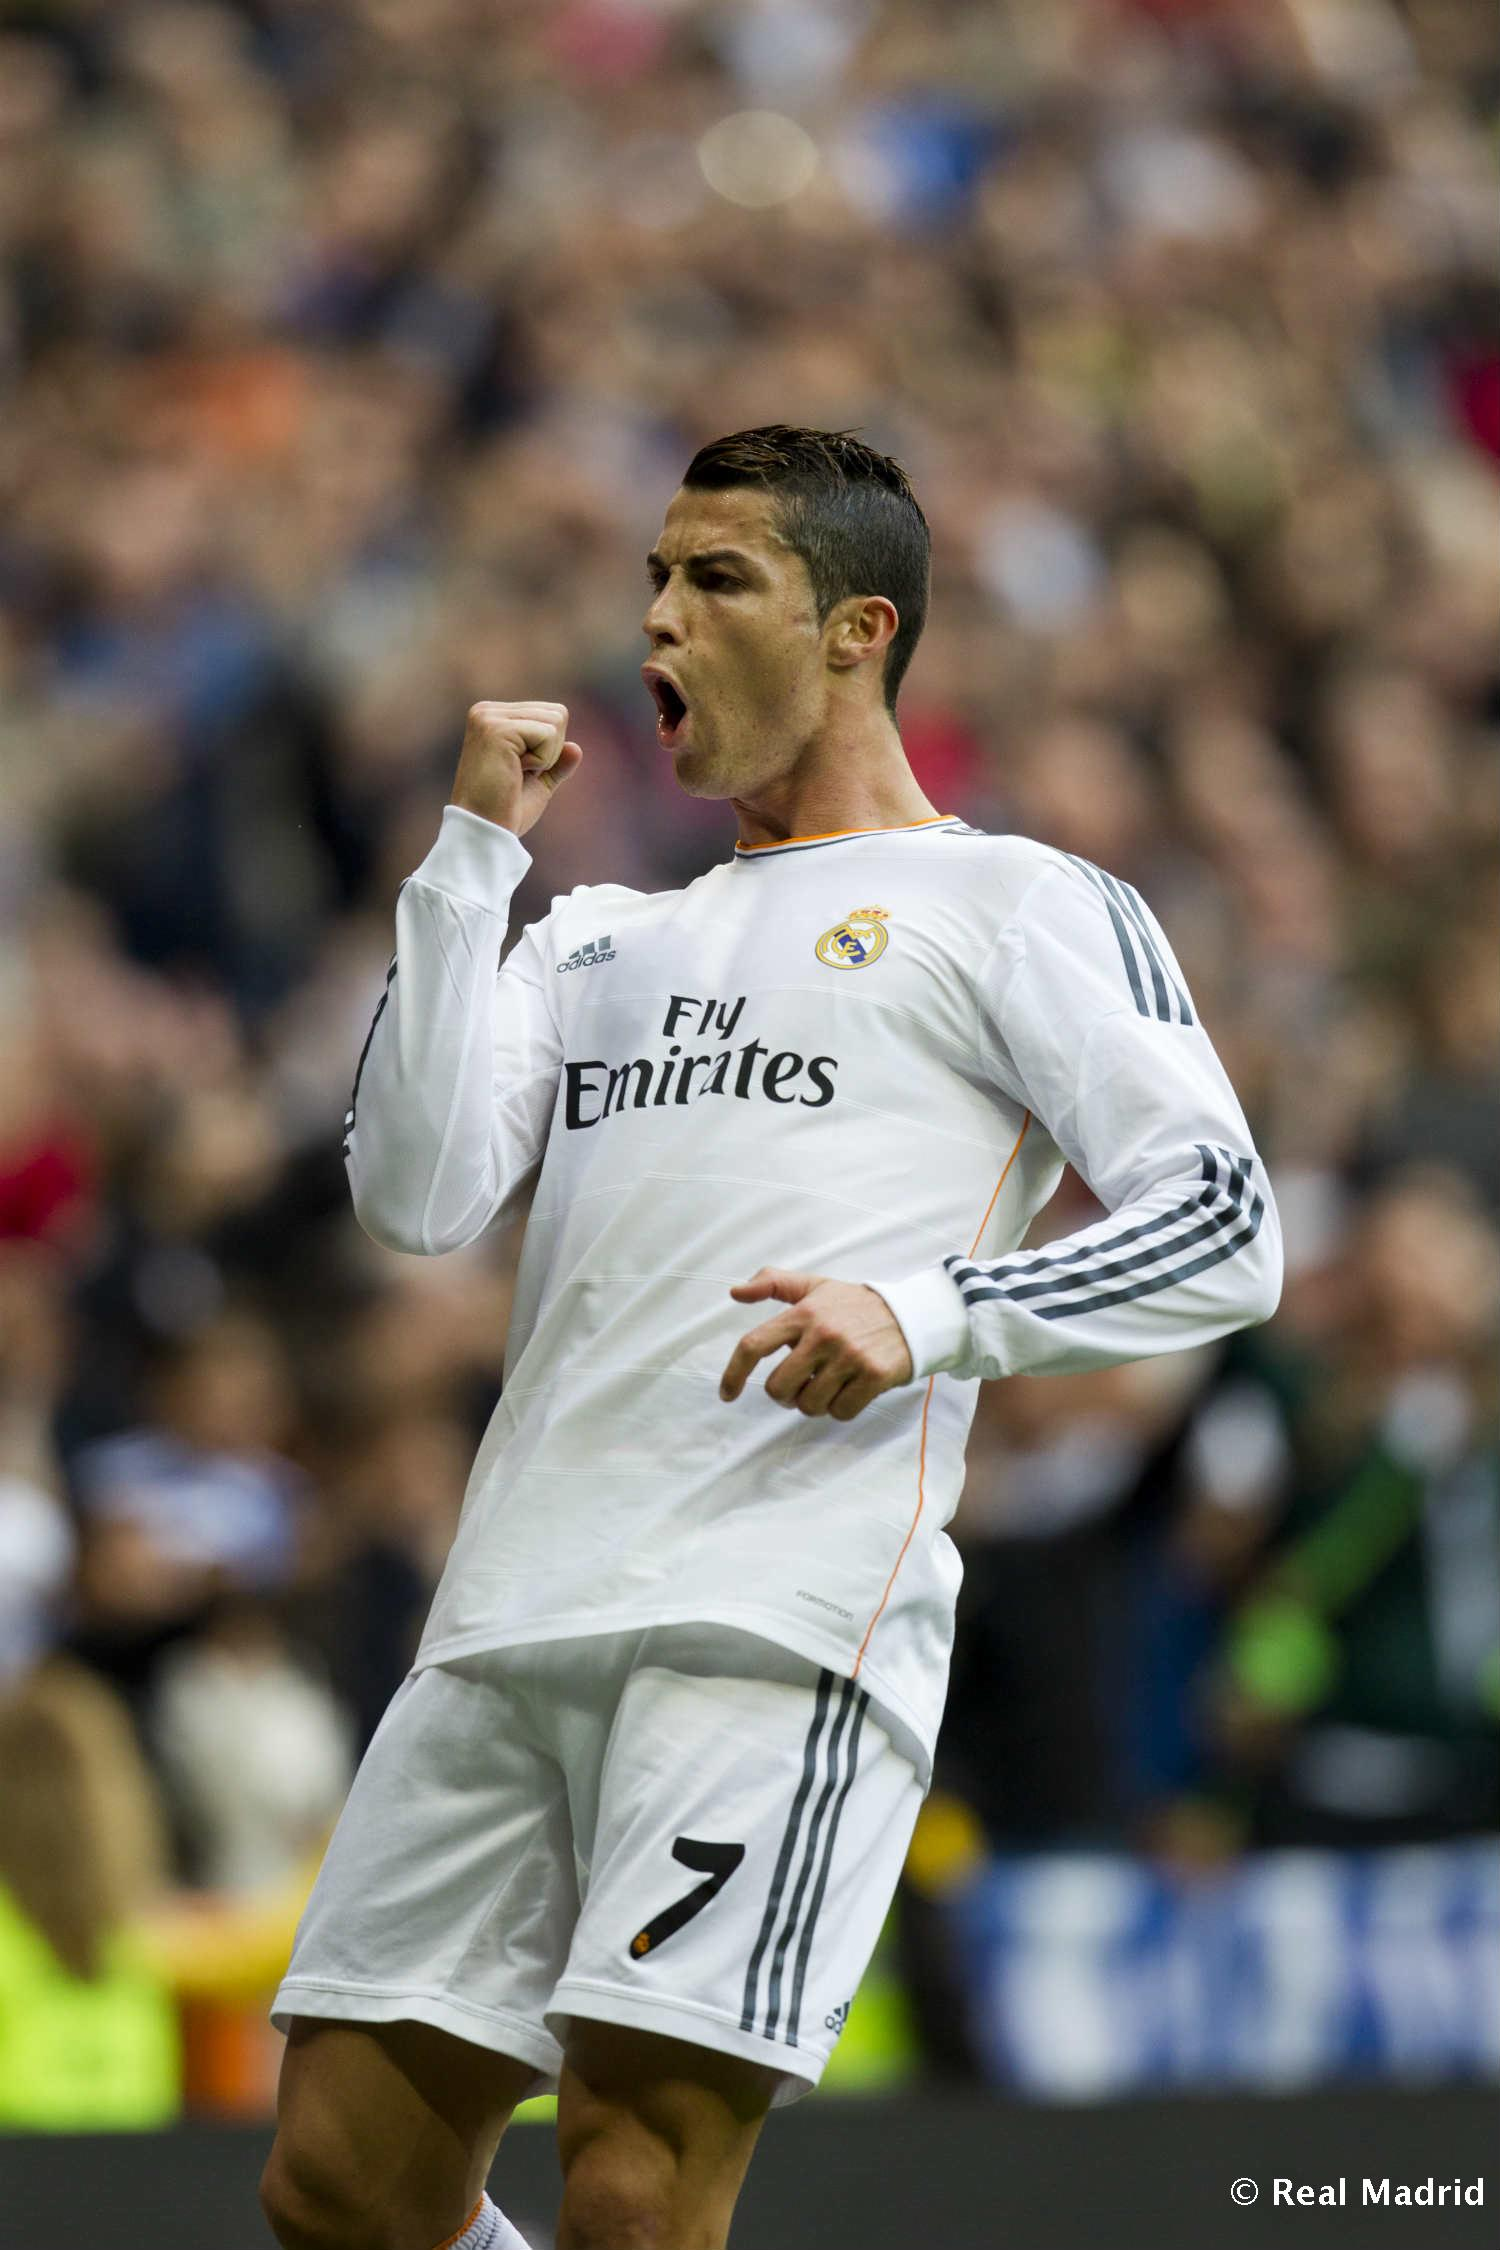 Real Madrid - Cristiano Ronaldo - 27-01-2014